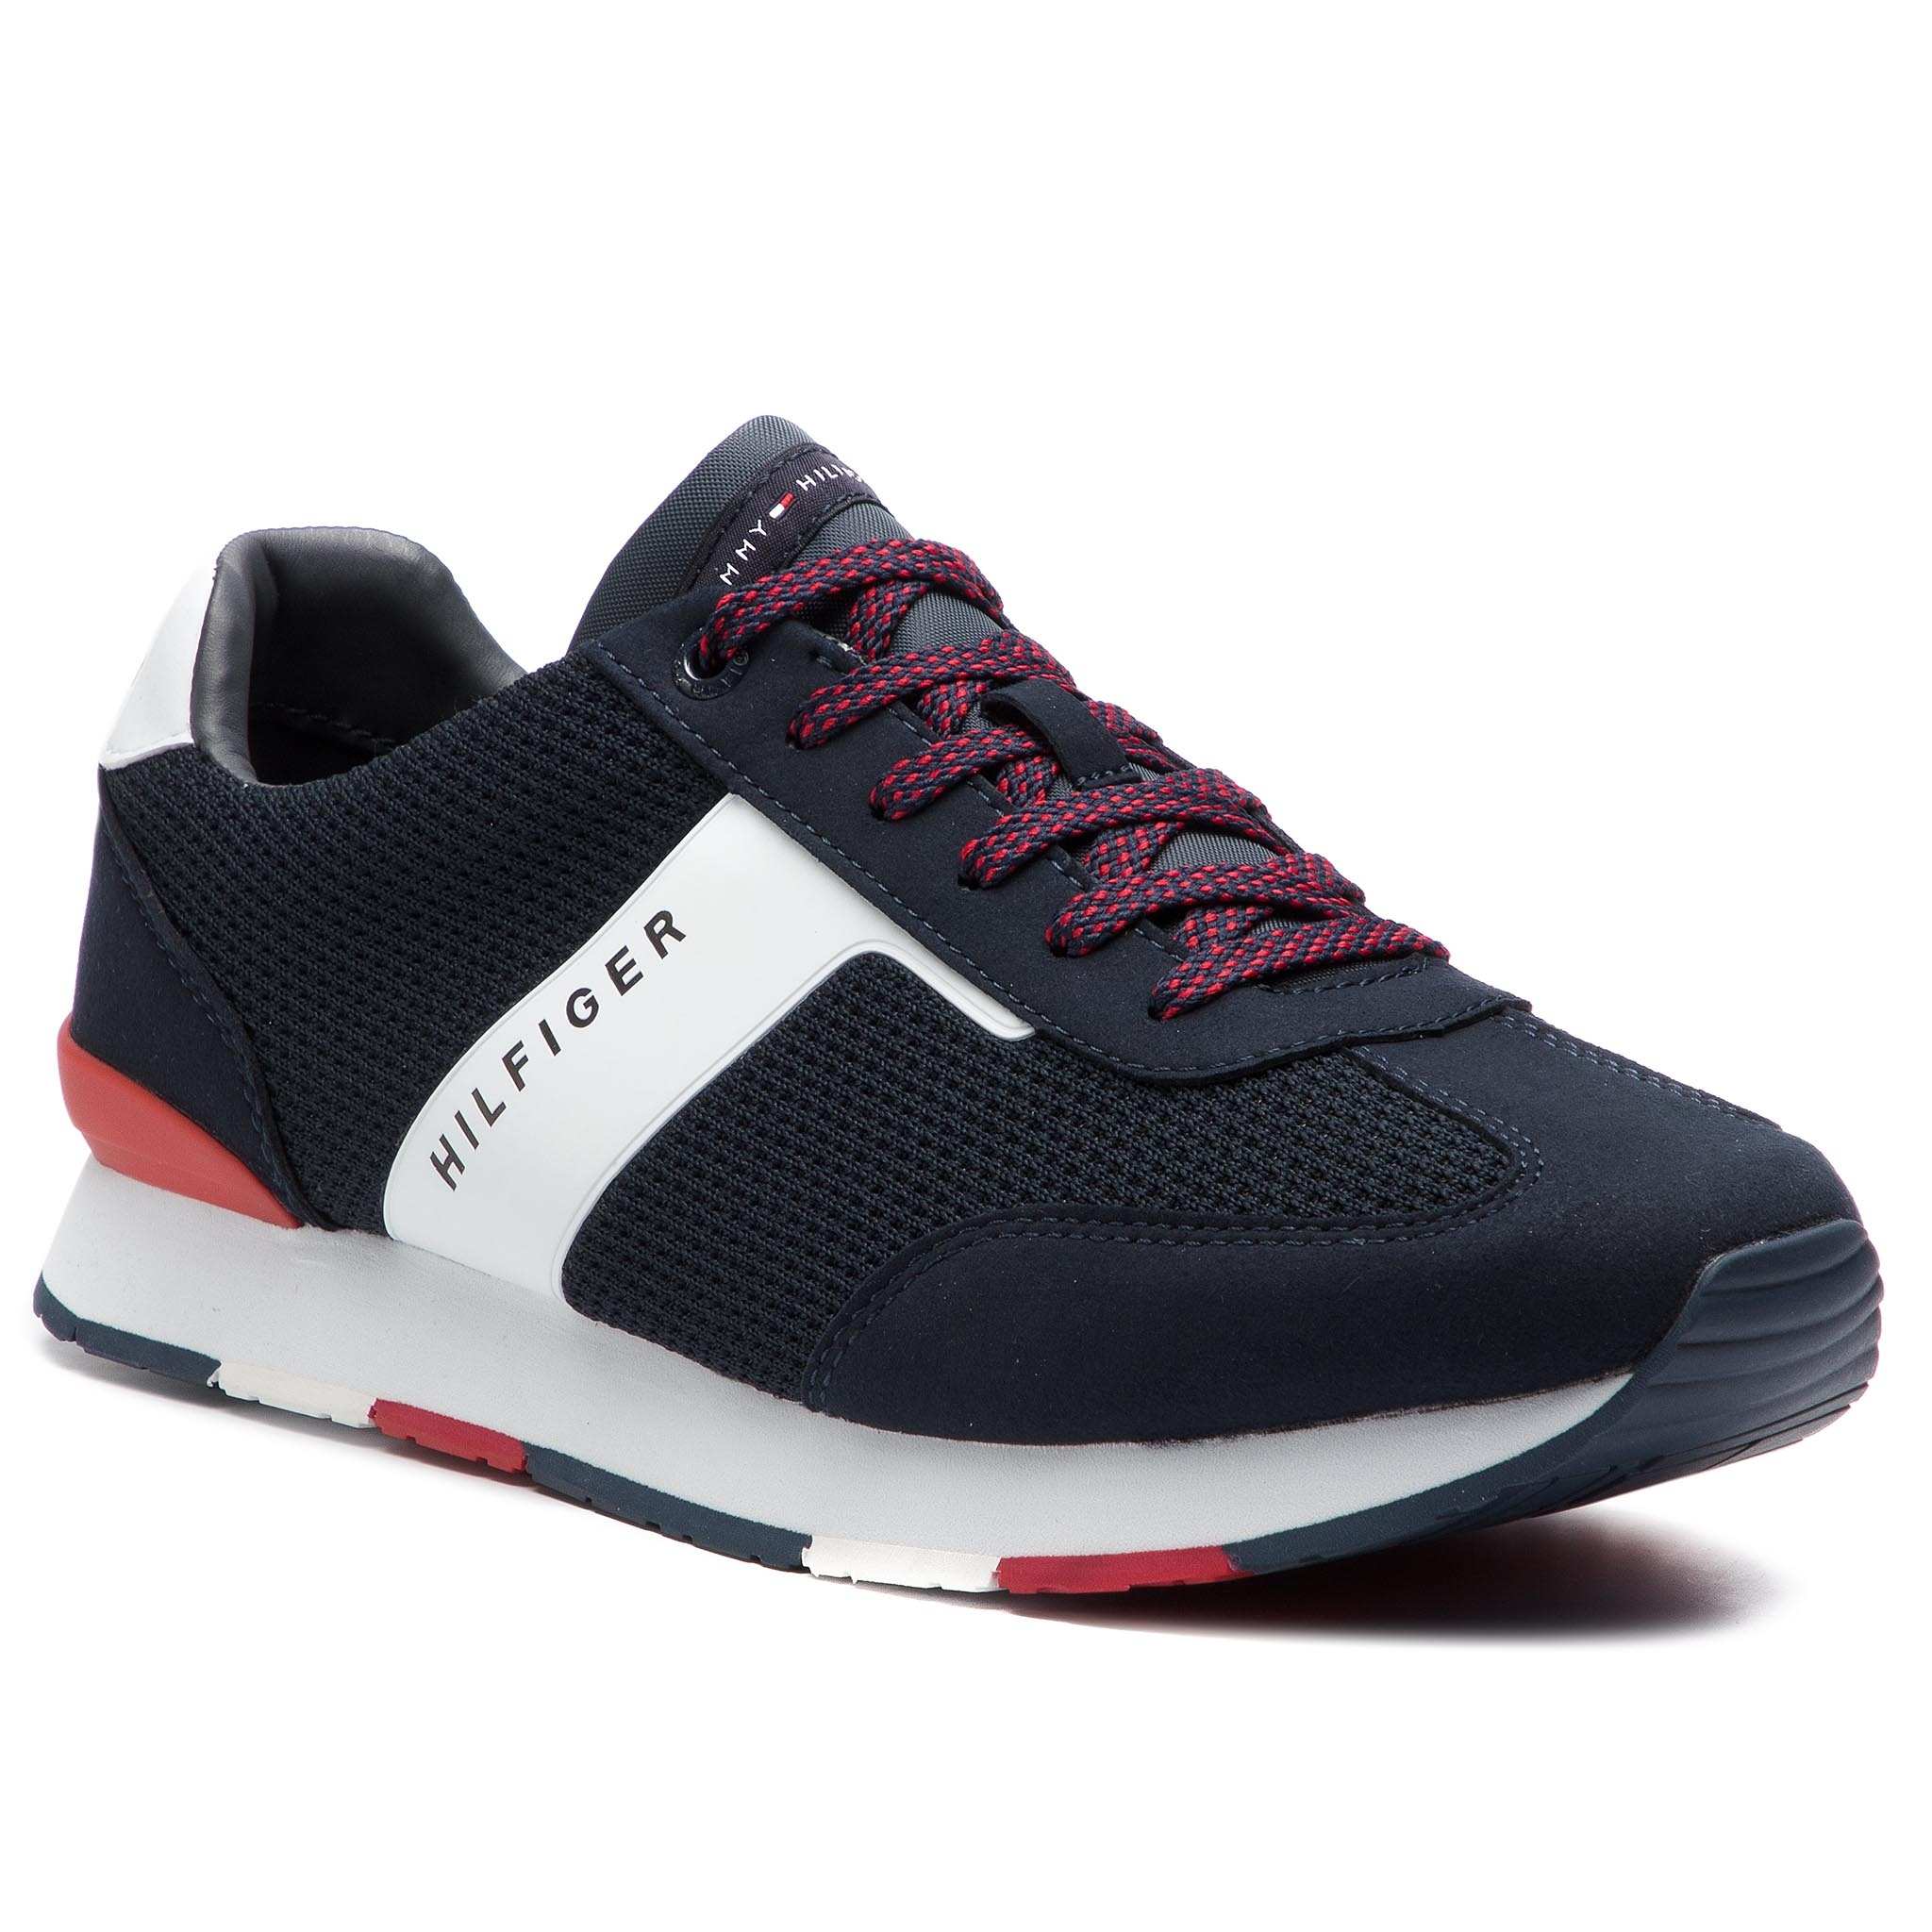 97b4c2321 Sneakers TOMMY HILFIGER - Knitted Material Mix Runner FM0FM01956 ...